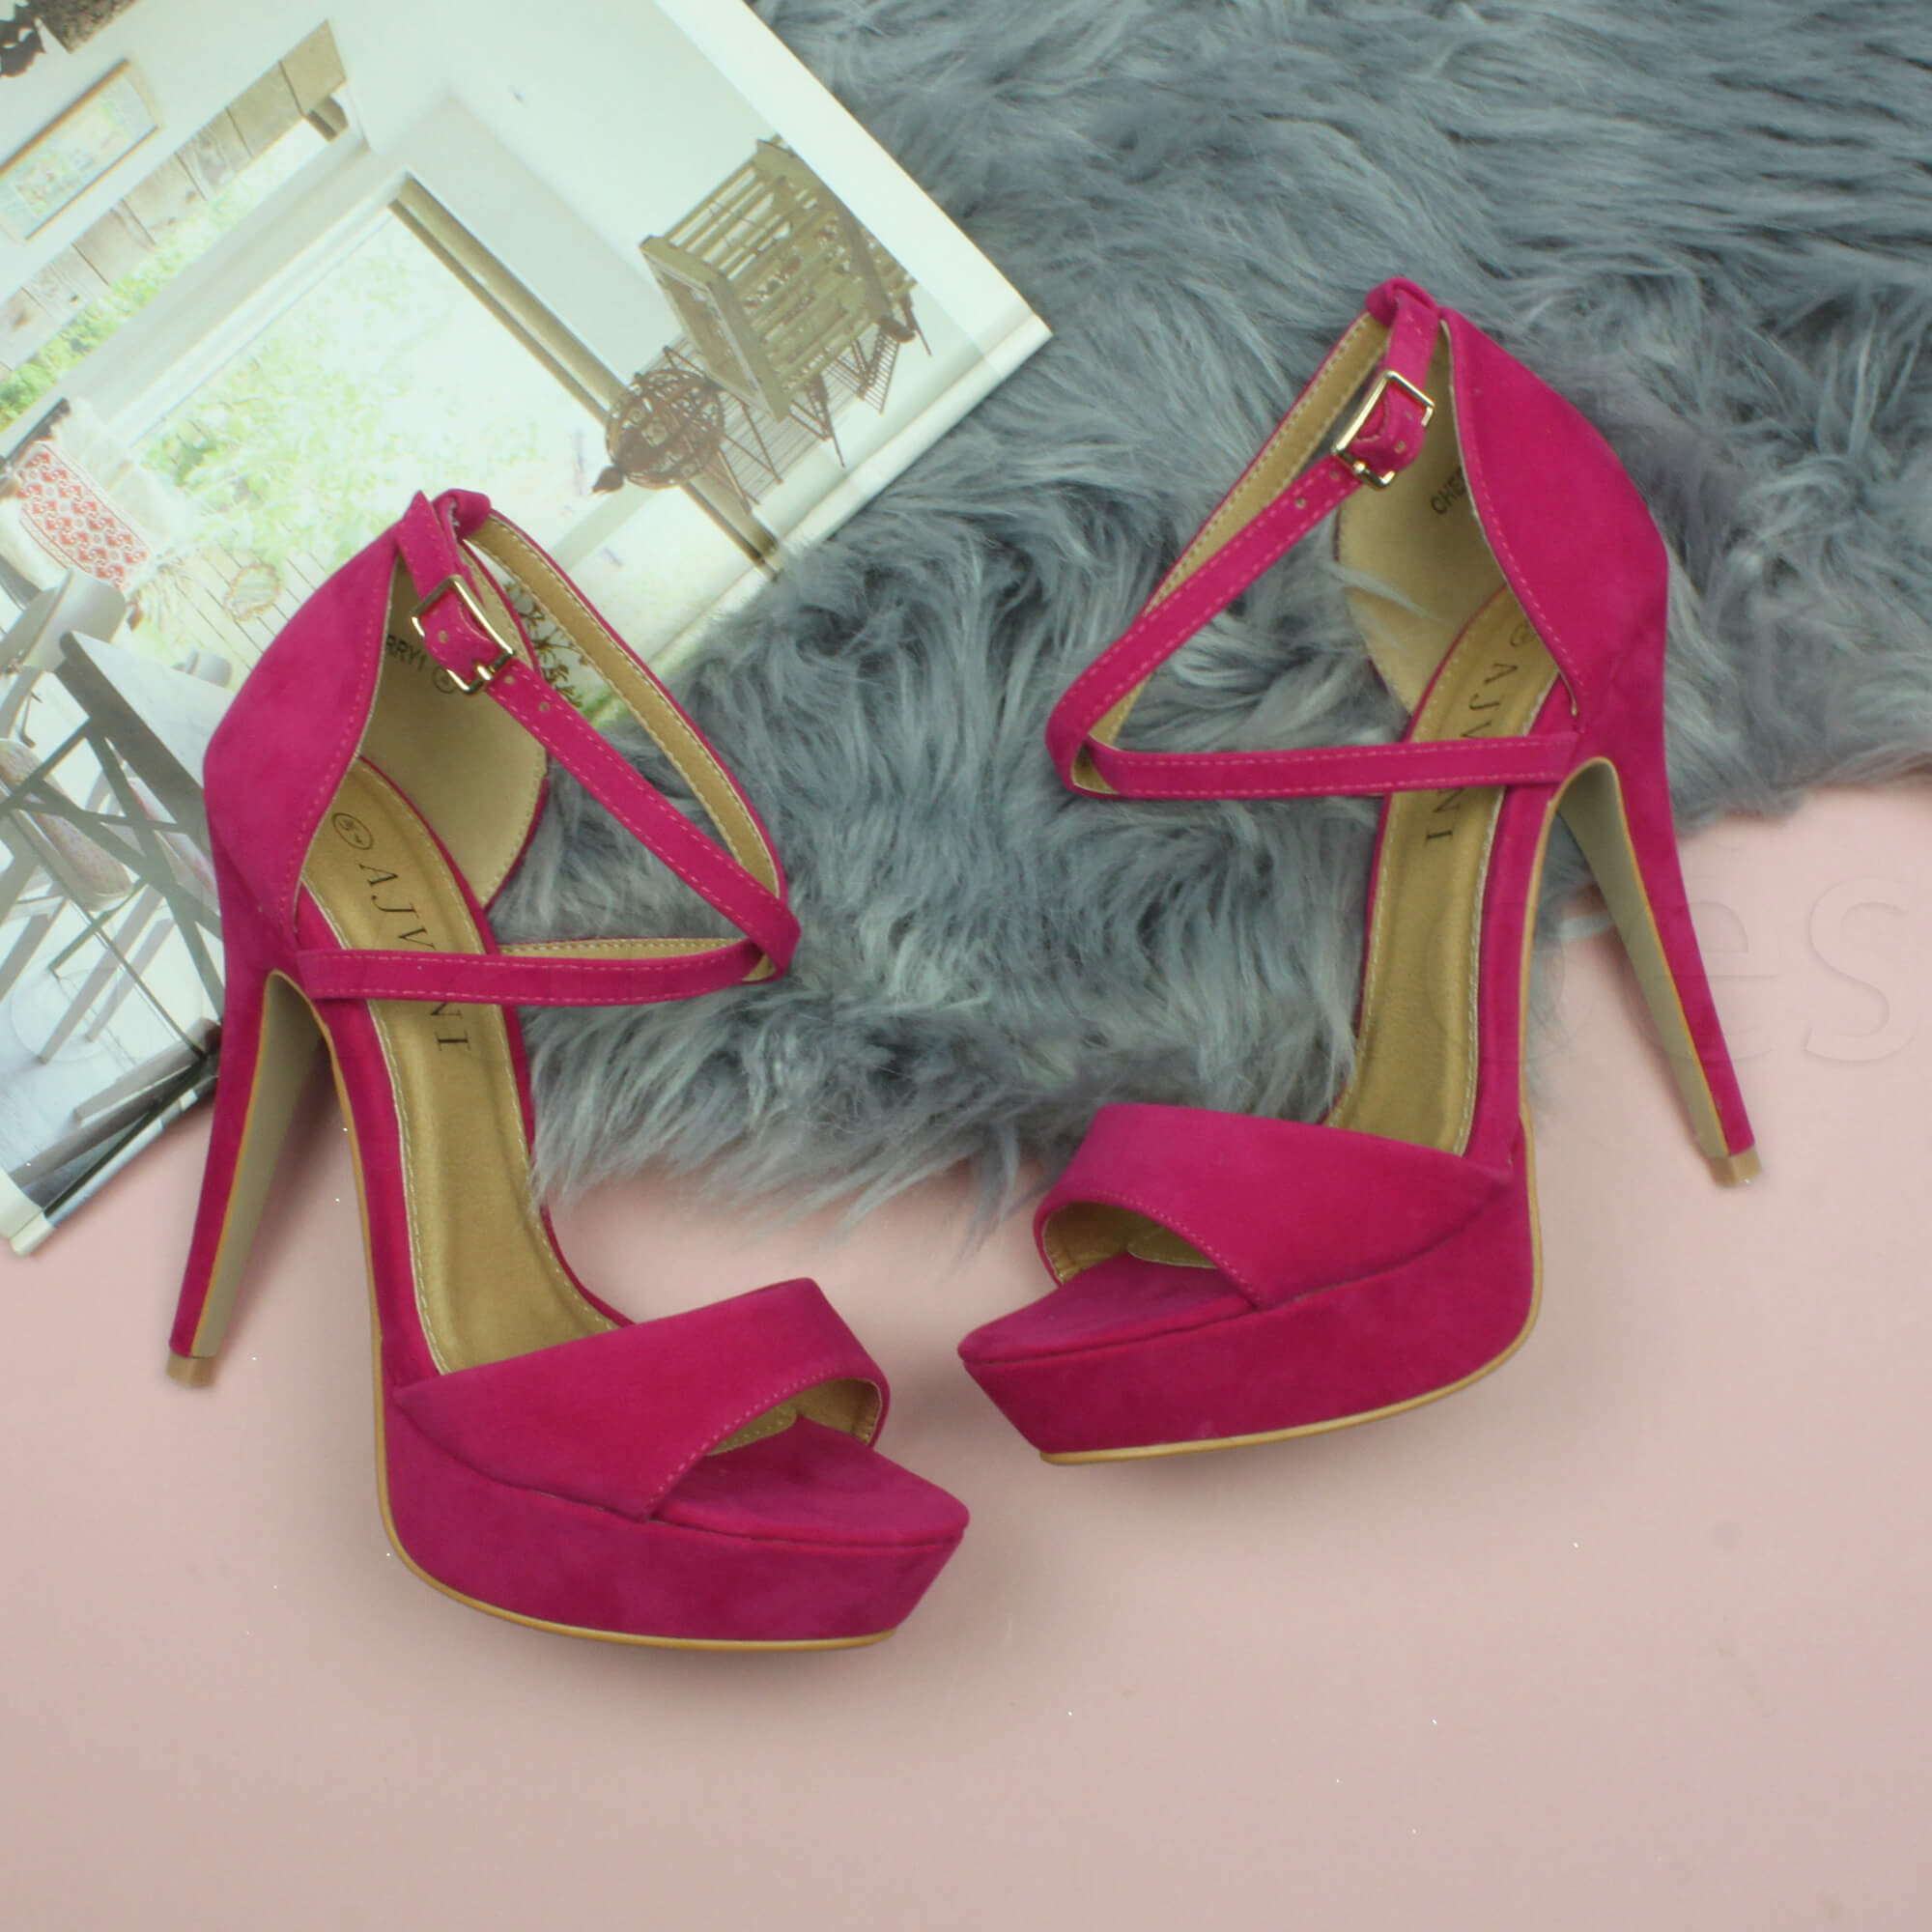 WOMENS-LADIES-PLATFORM-HIGH-HEEL-PEEP-TOE-CROSS-OVER-STRAPPY-SANDALS-SHOES-SIZE thumbnail 39